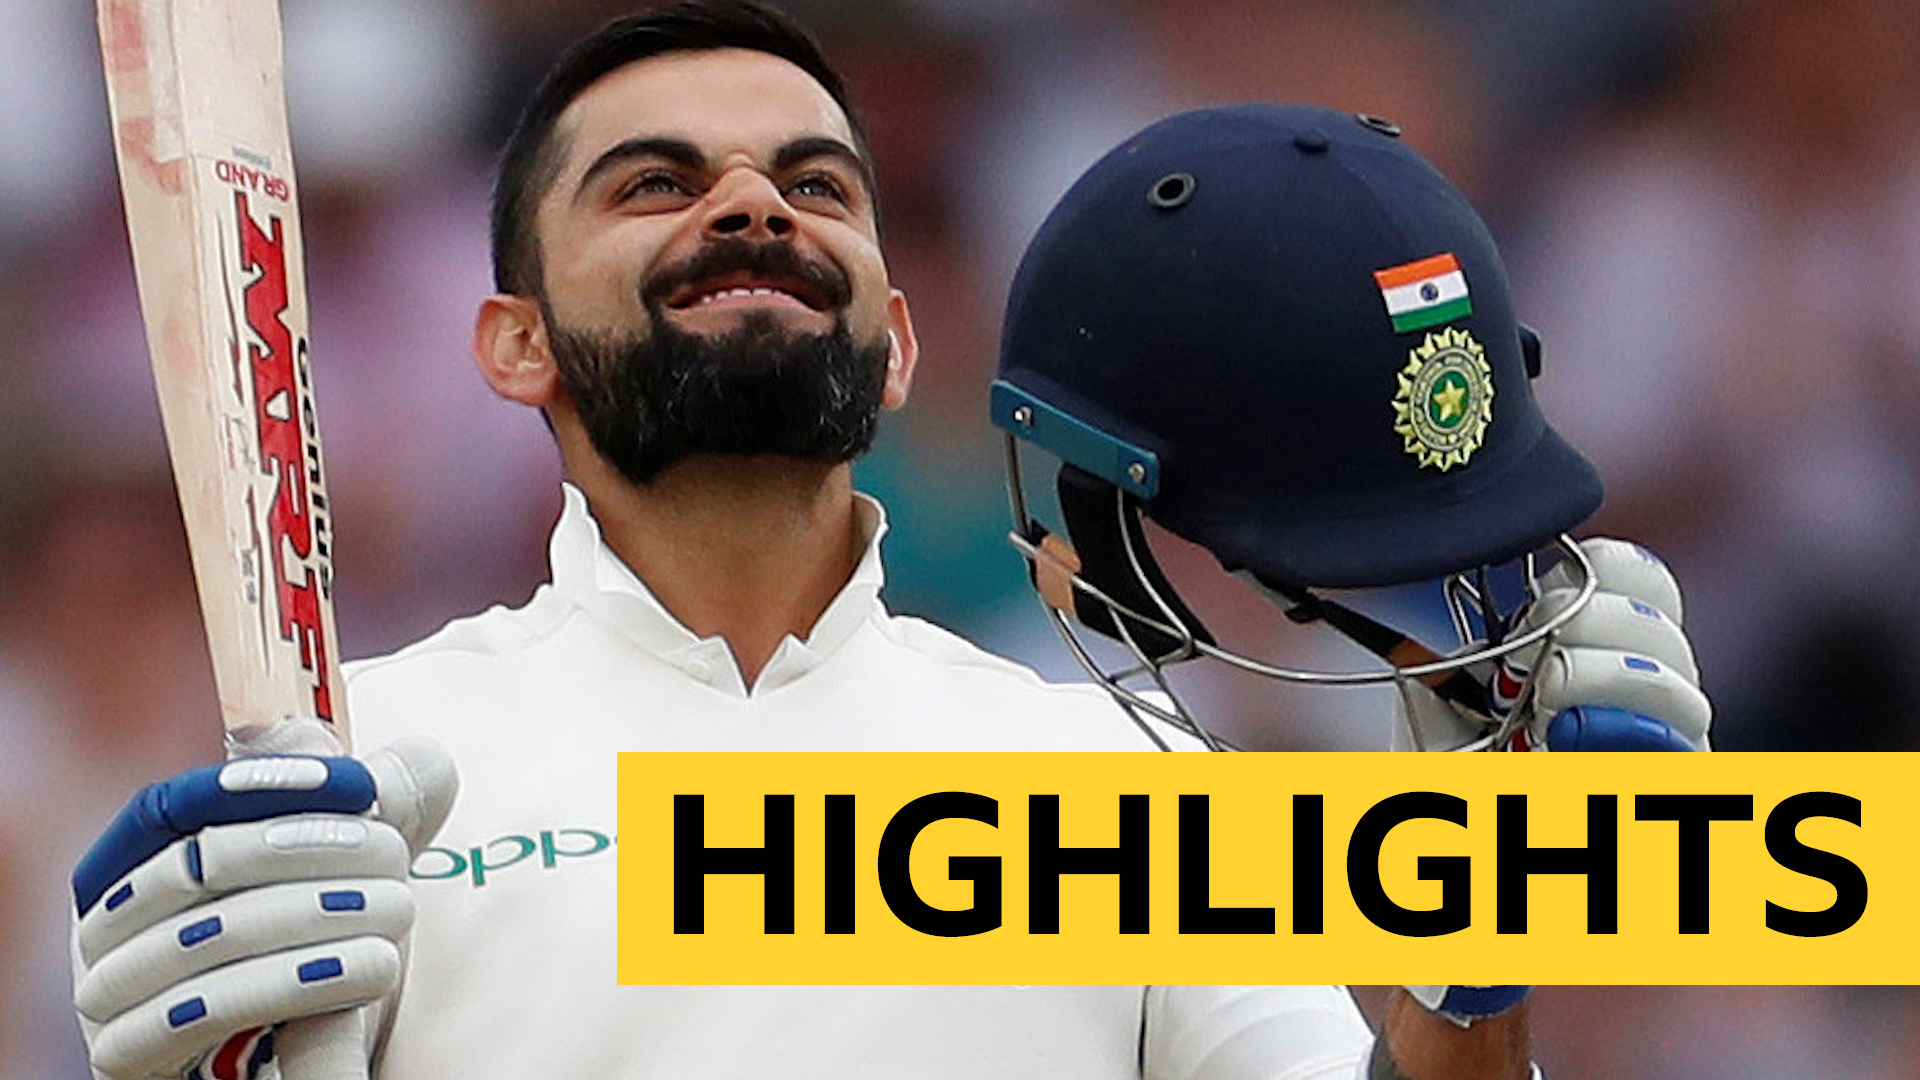 England v India: Virat Kohli hits century as Joe Root's men struggle on day three